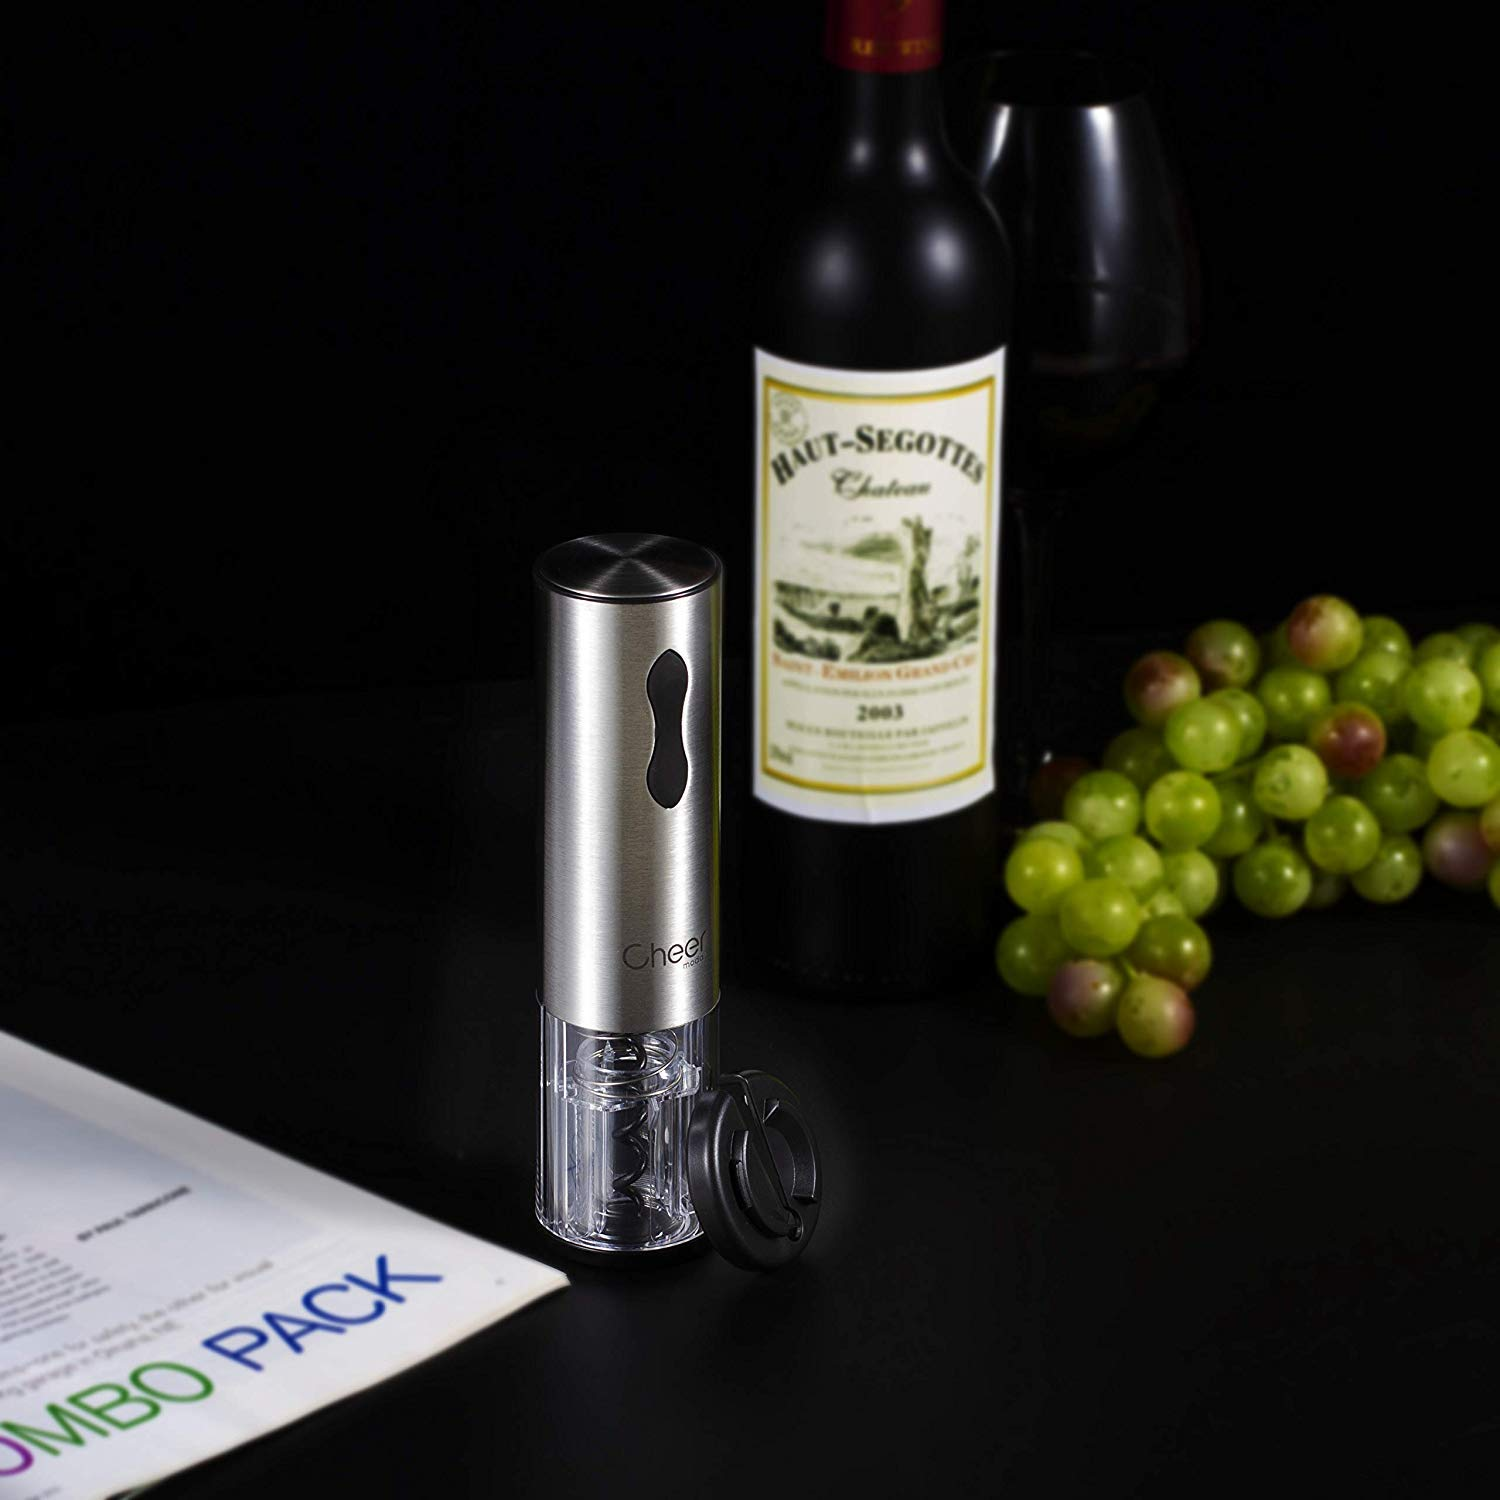 Electric Wine Opener Gift Set with Foil Cutter, Mini Wine Pump Sealer and Stopper with Date Marker, Wine Aerator Pourer and Batteries Included 7717-W102-03 by CHEER (Image #2)